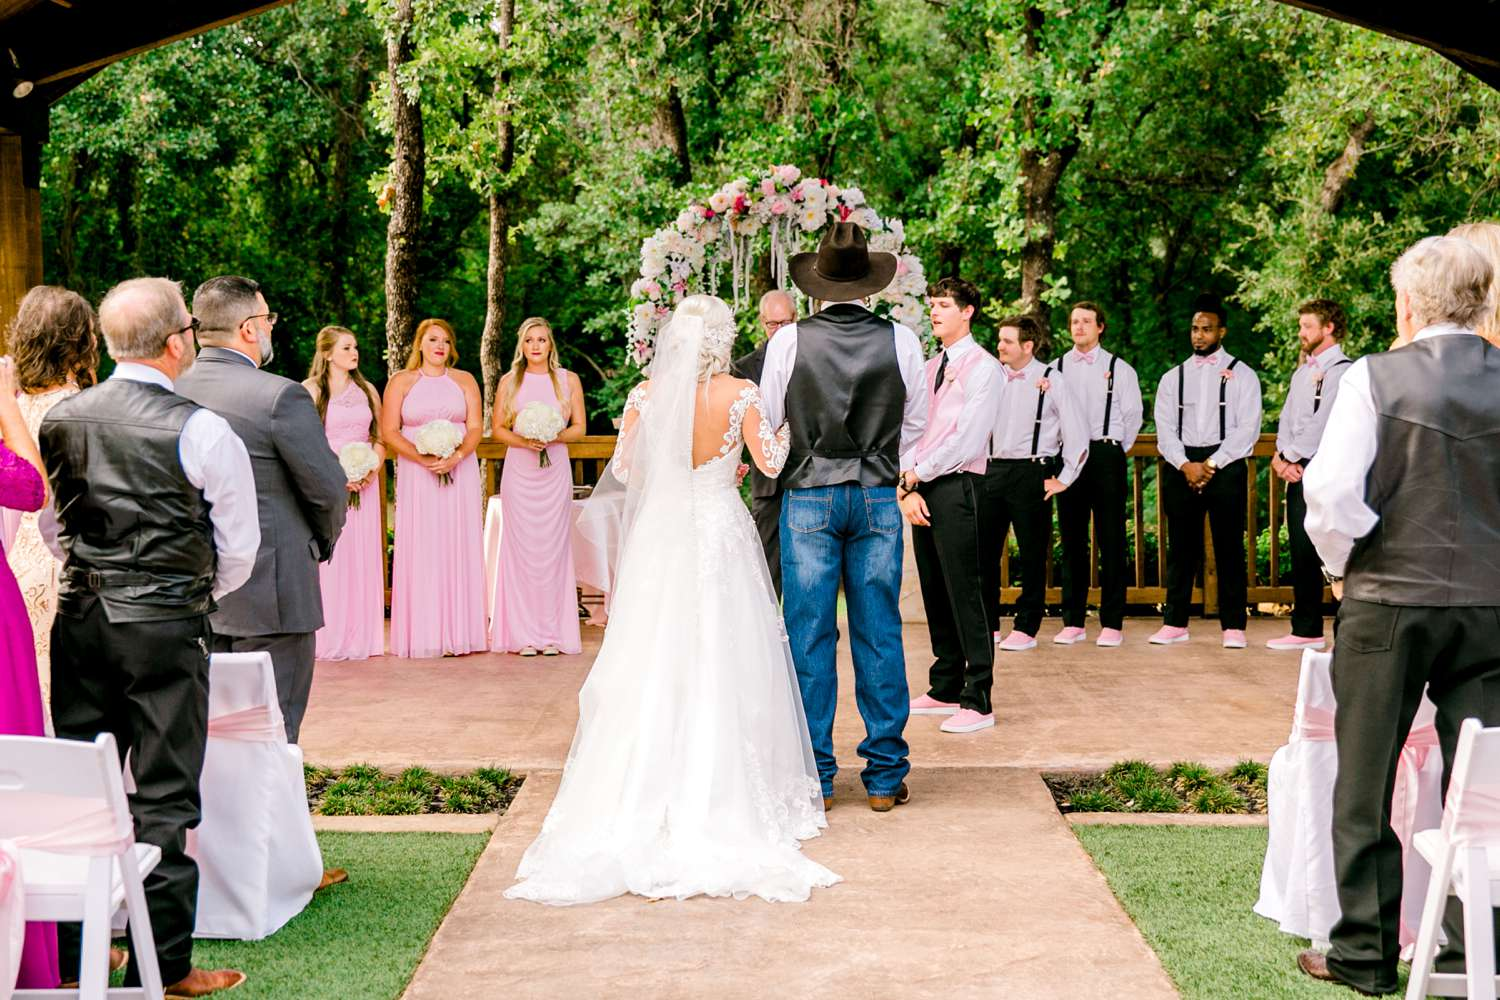 JESSICA+LYLE+NEEL+THE_SPRINGS_EVENTS_WEDDING_OKLAHOMA_ALLEEJ_PHOTOGRAPHER_0052.jpg